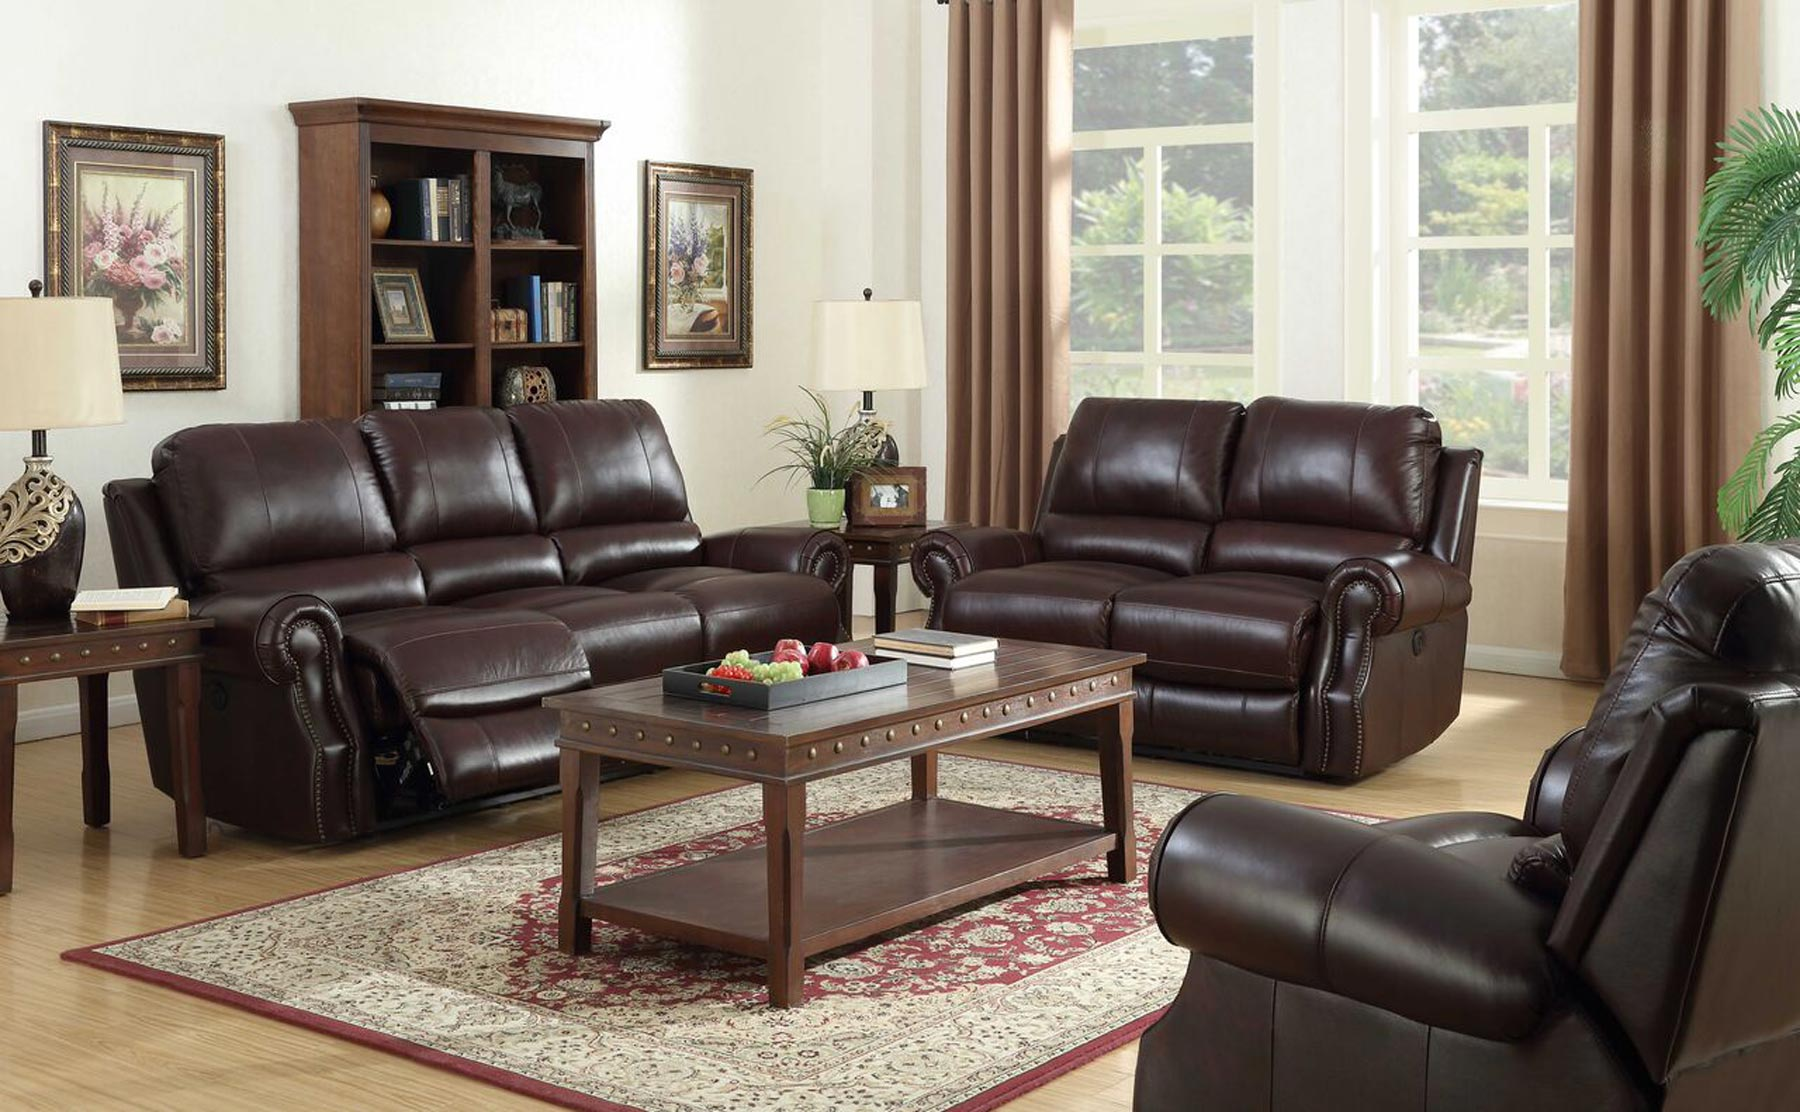 piece ac louis reviews set furniture pdx wayfair pacific two living room